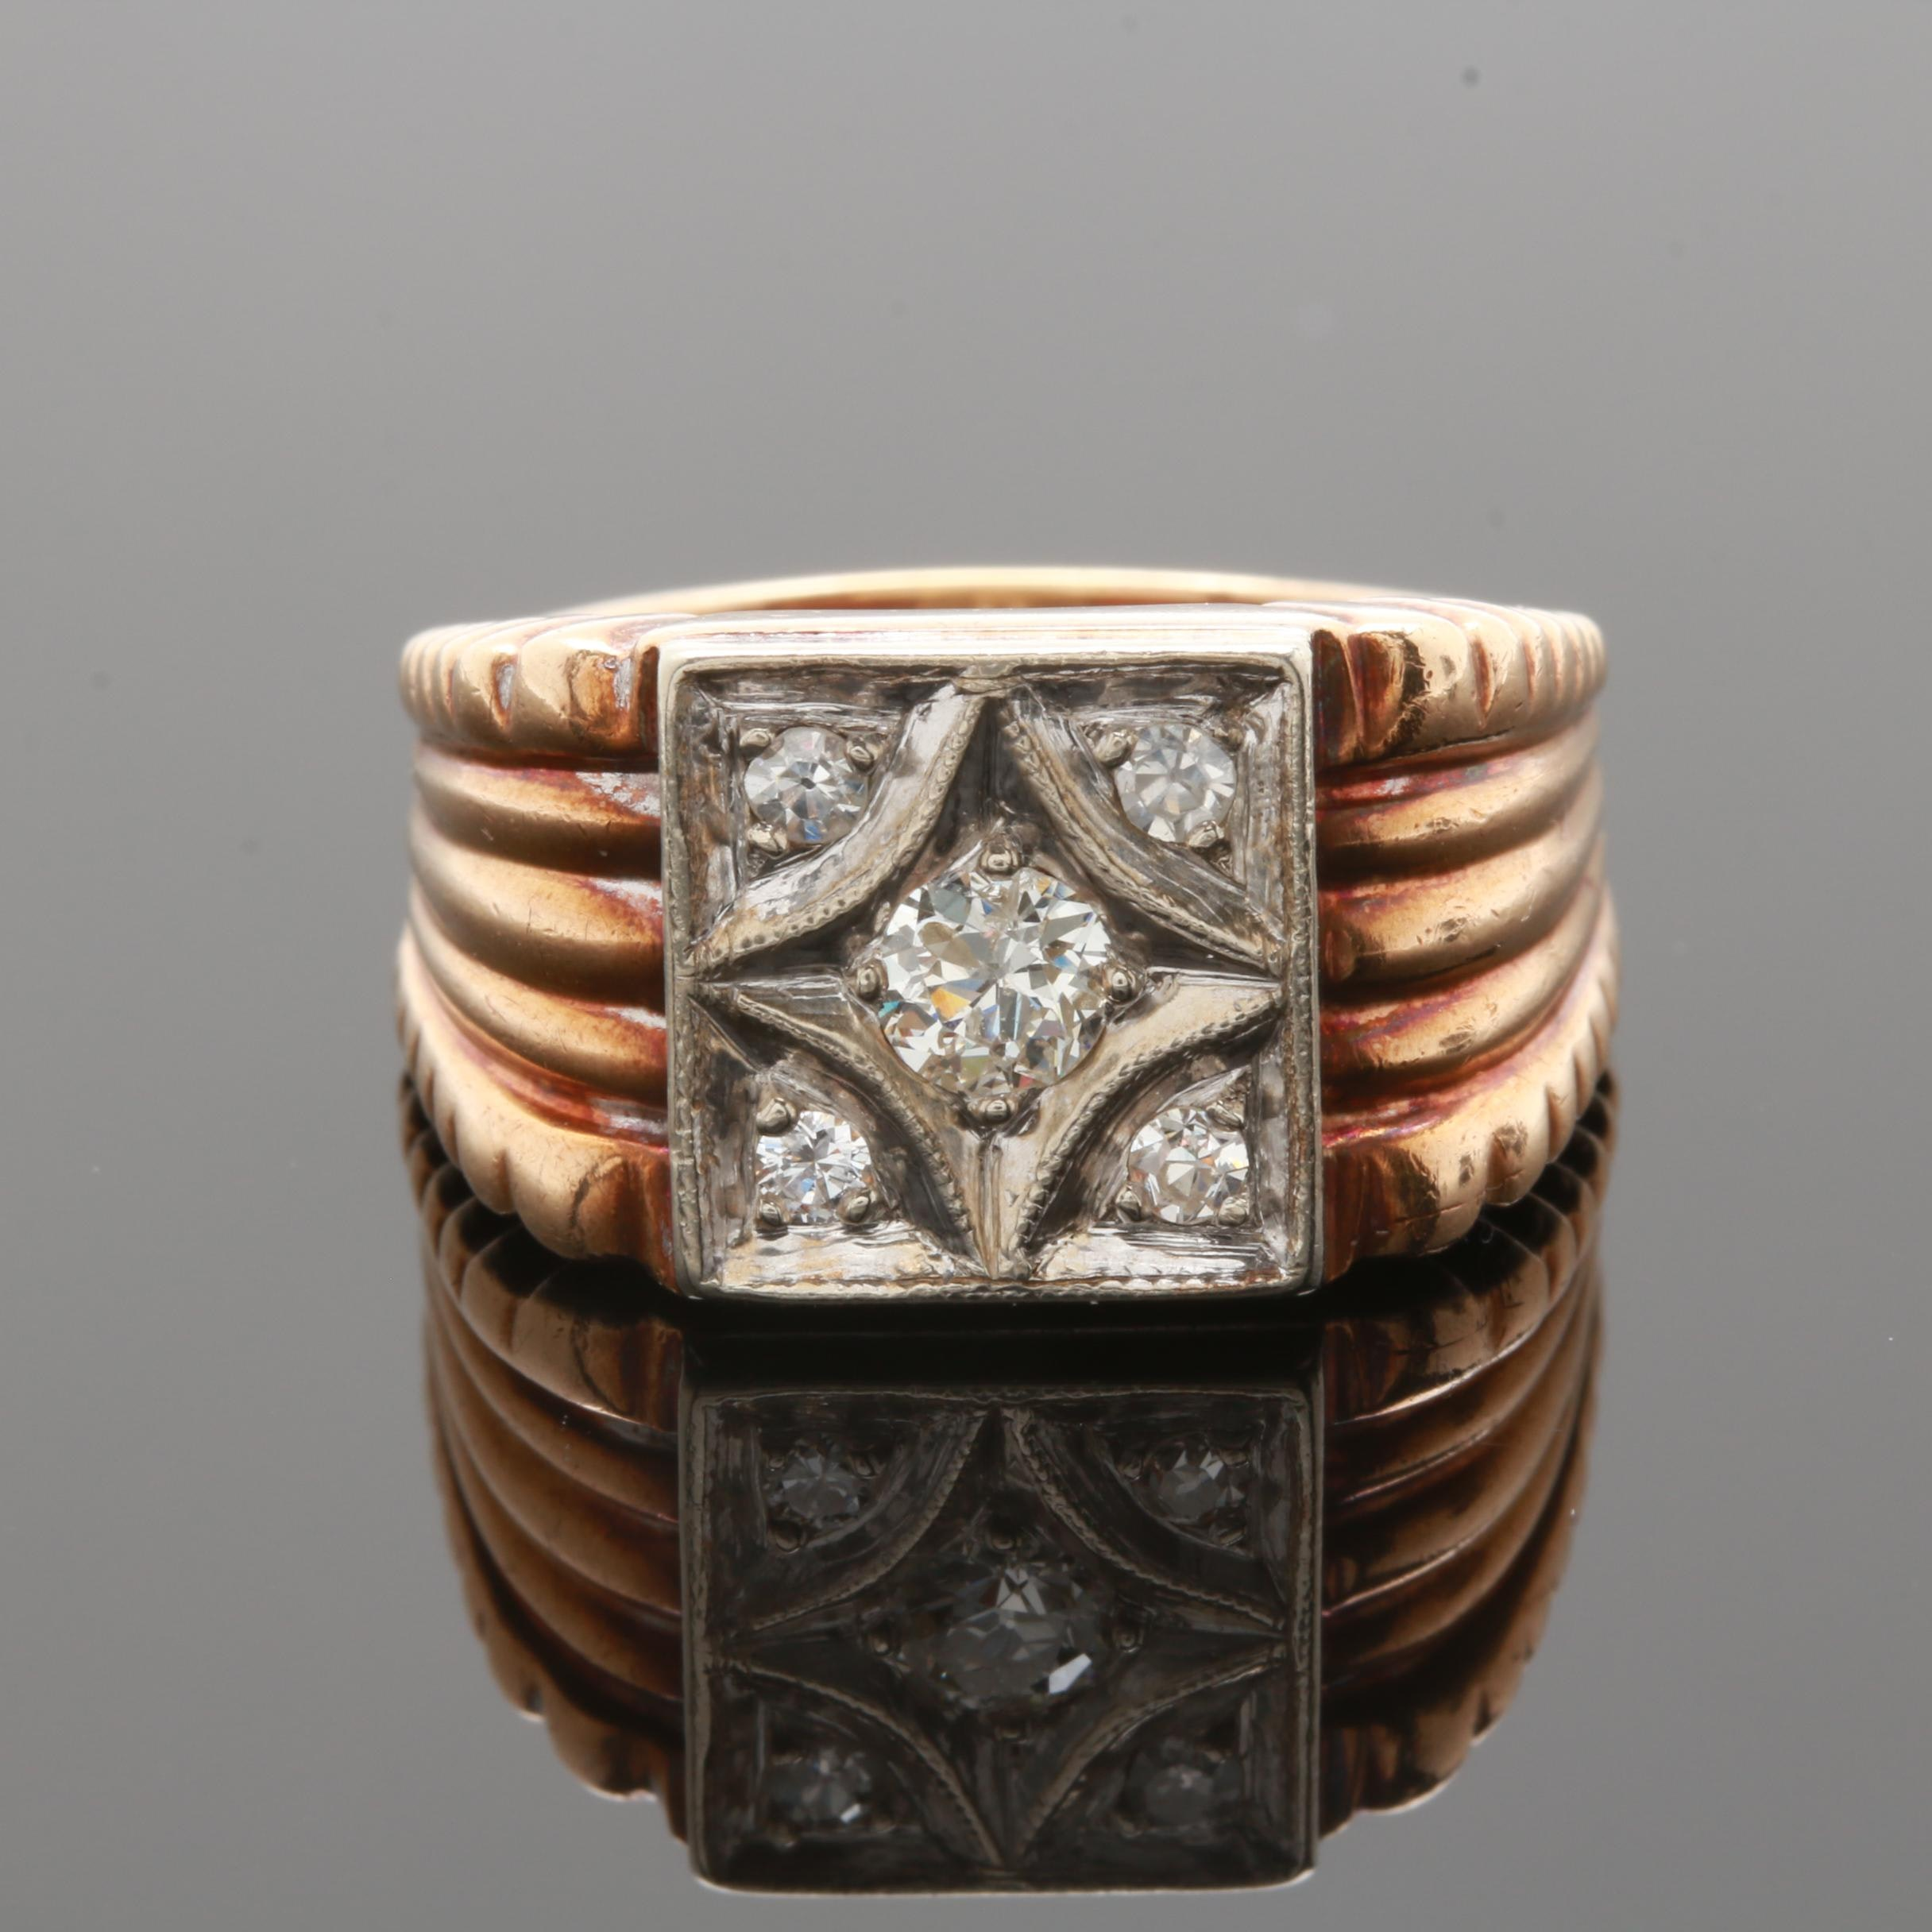 Circa 1900-1910 10K Yellow Gold Diamond Ring with 10K White Gold Accents